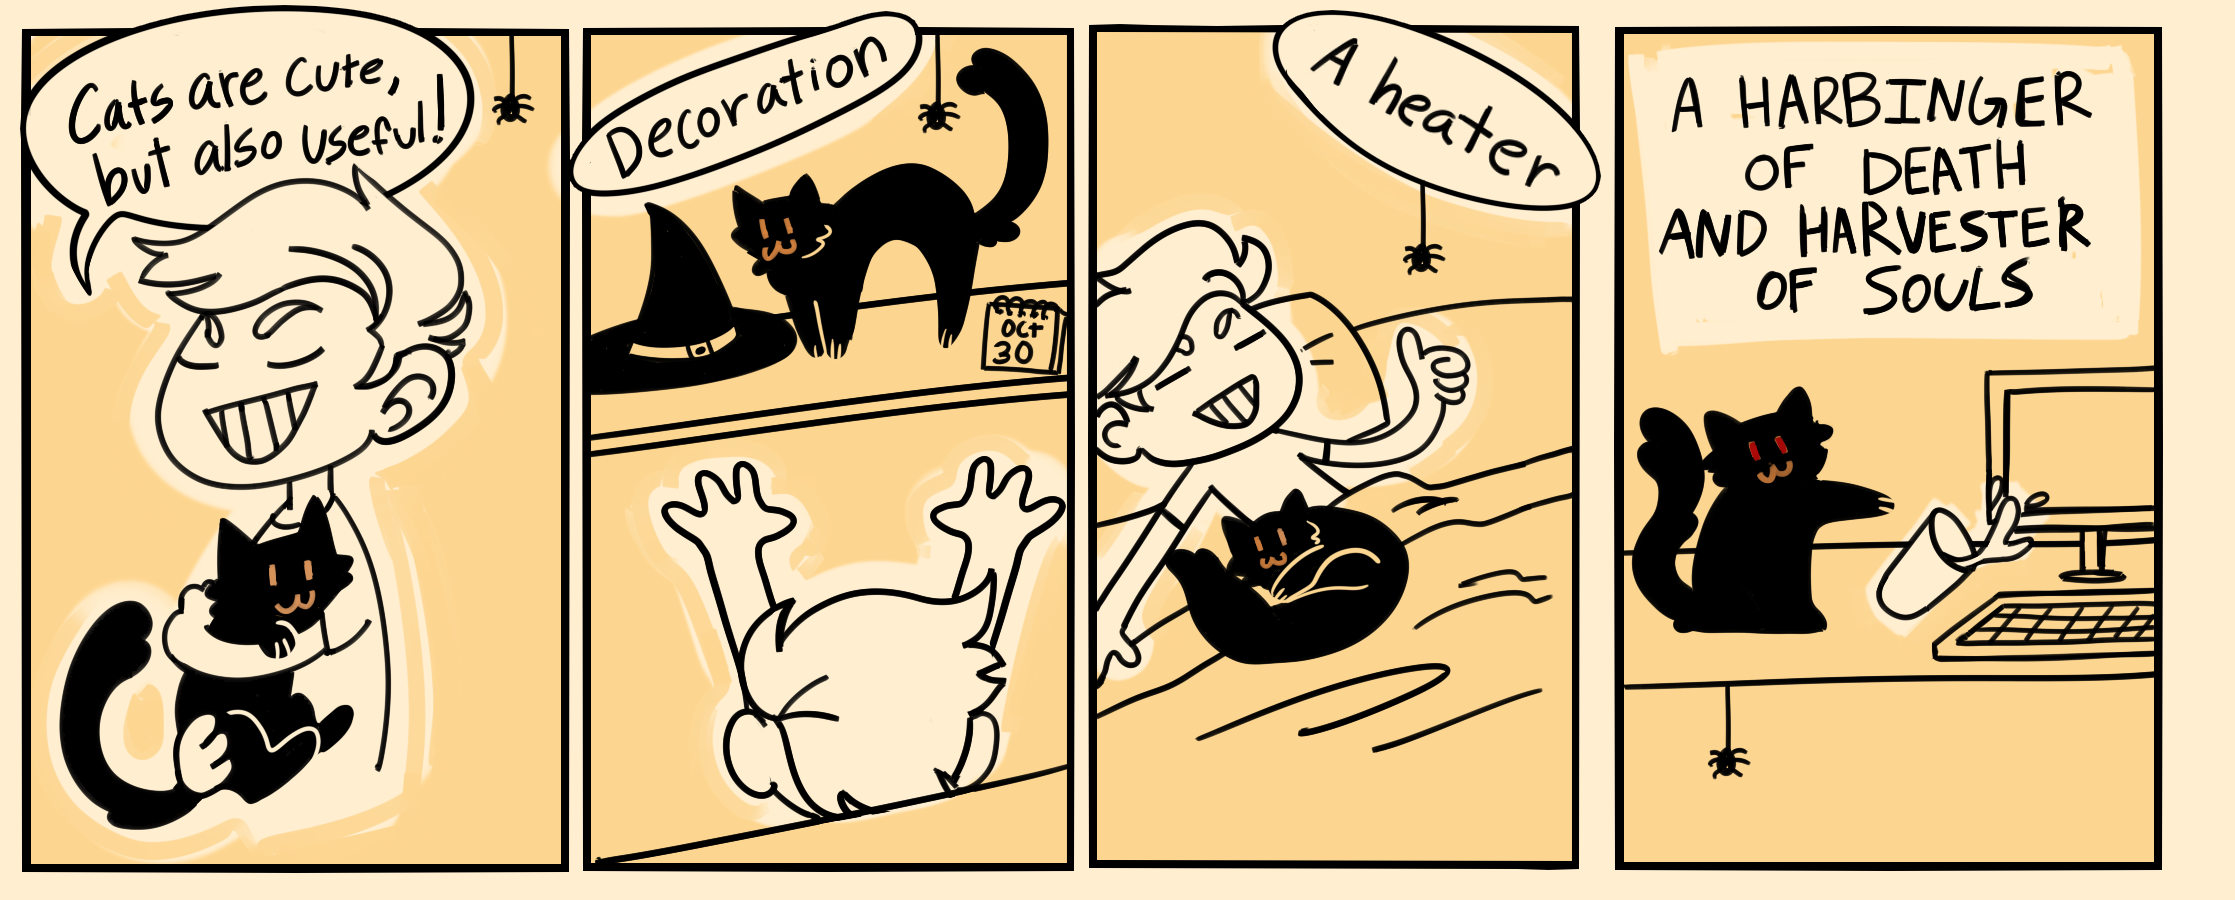 Uses for cats